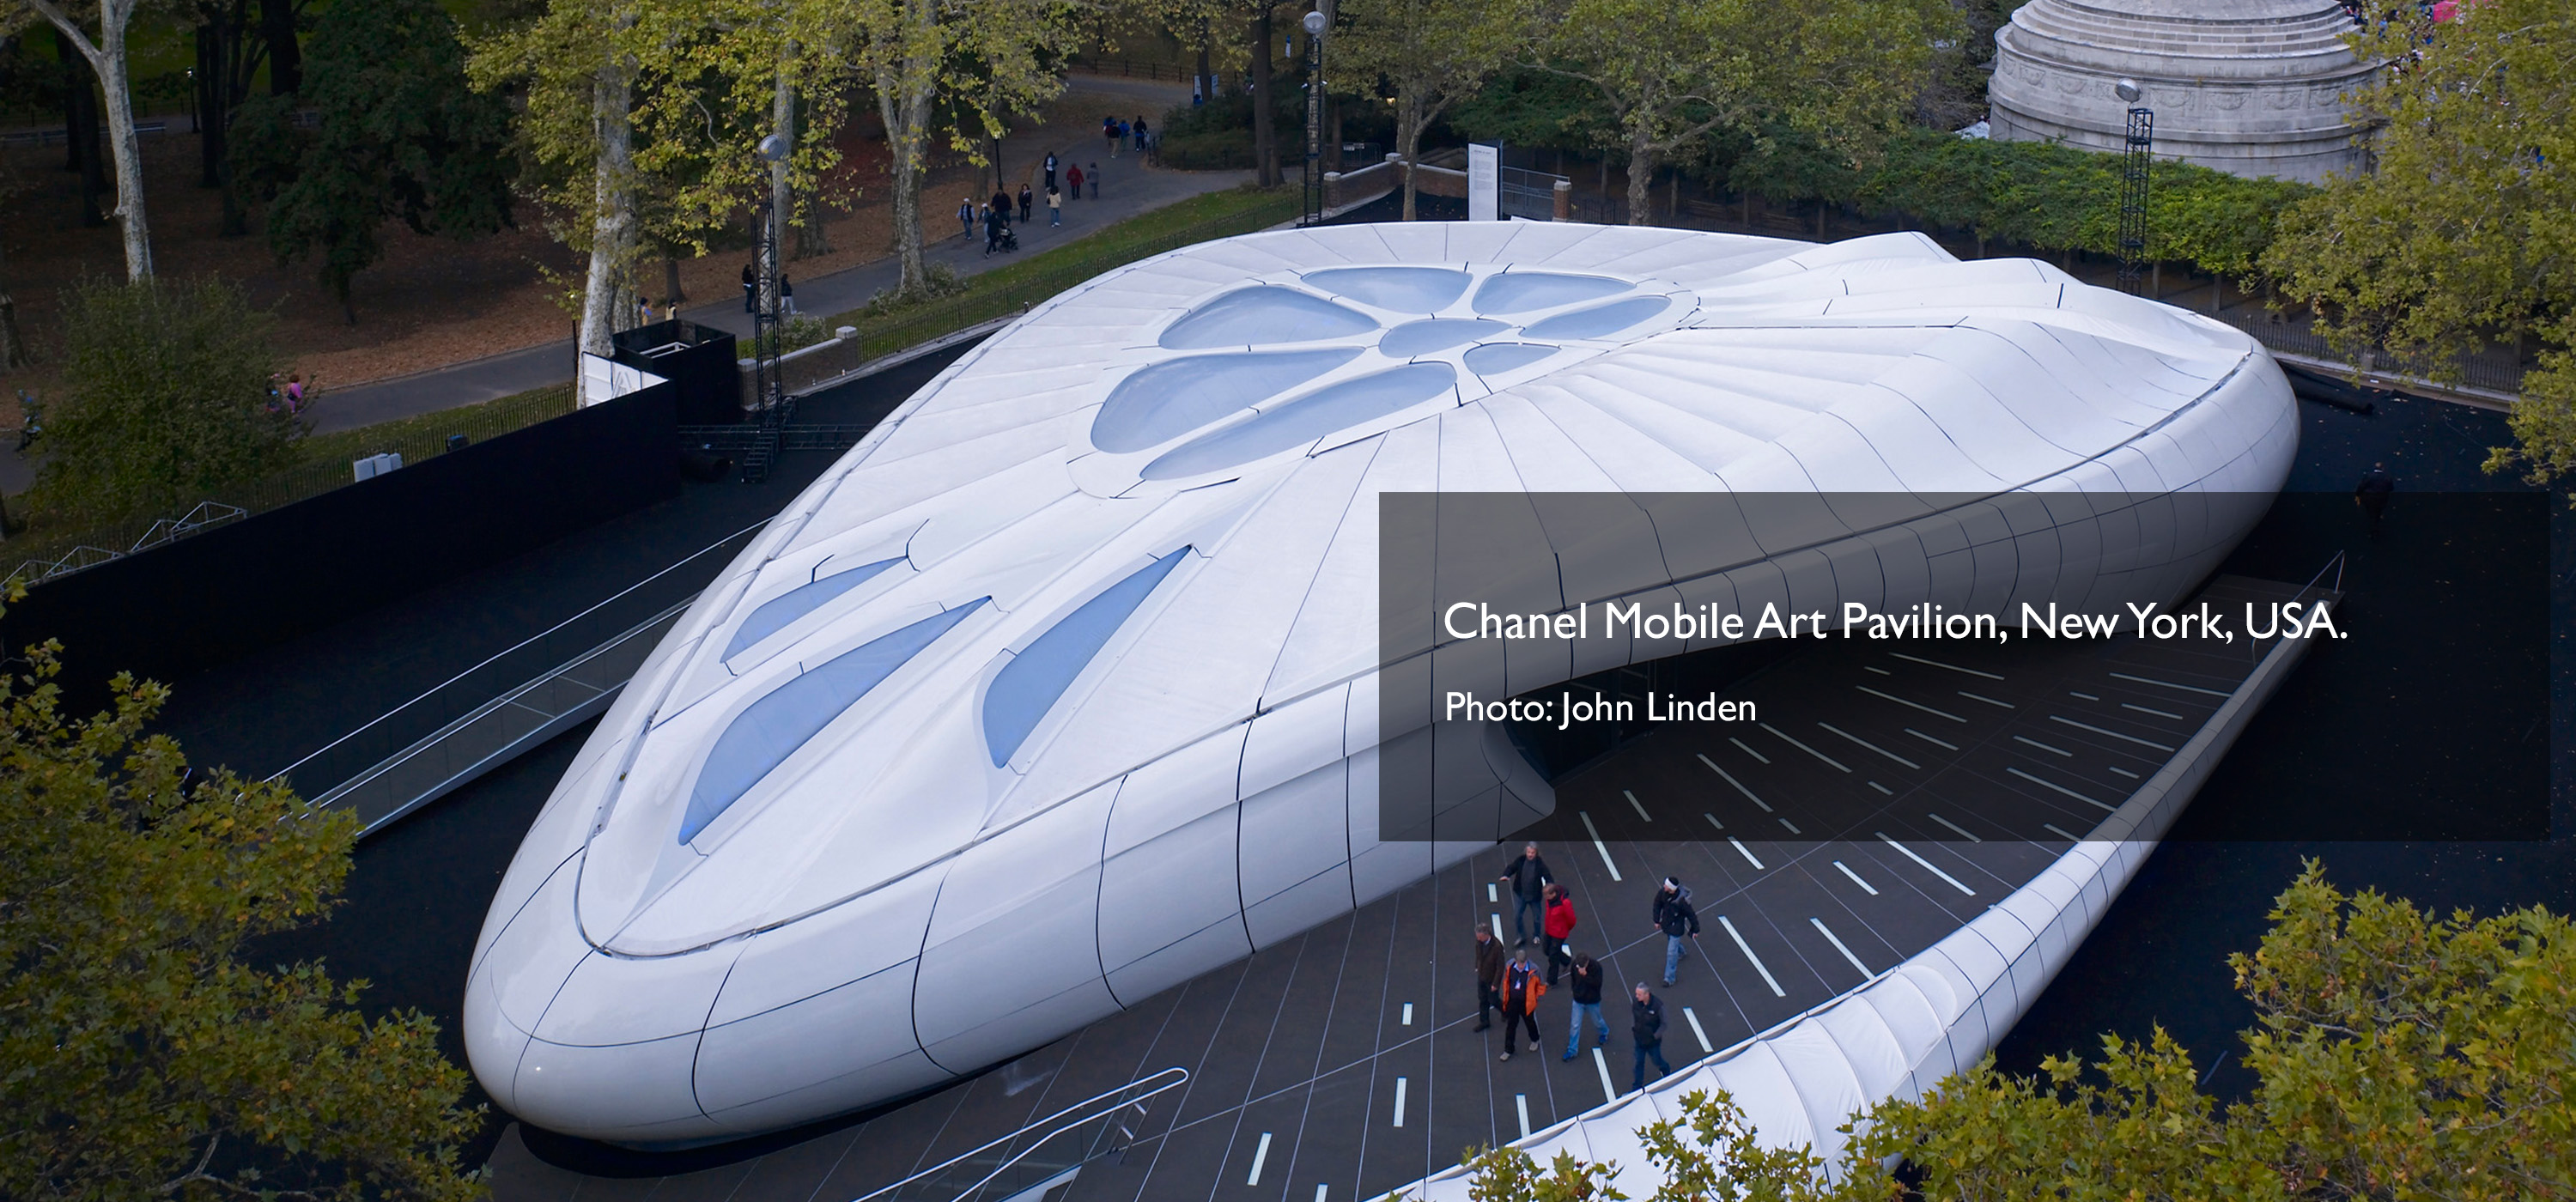 Chanel Mobile Art Pavilion